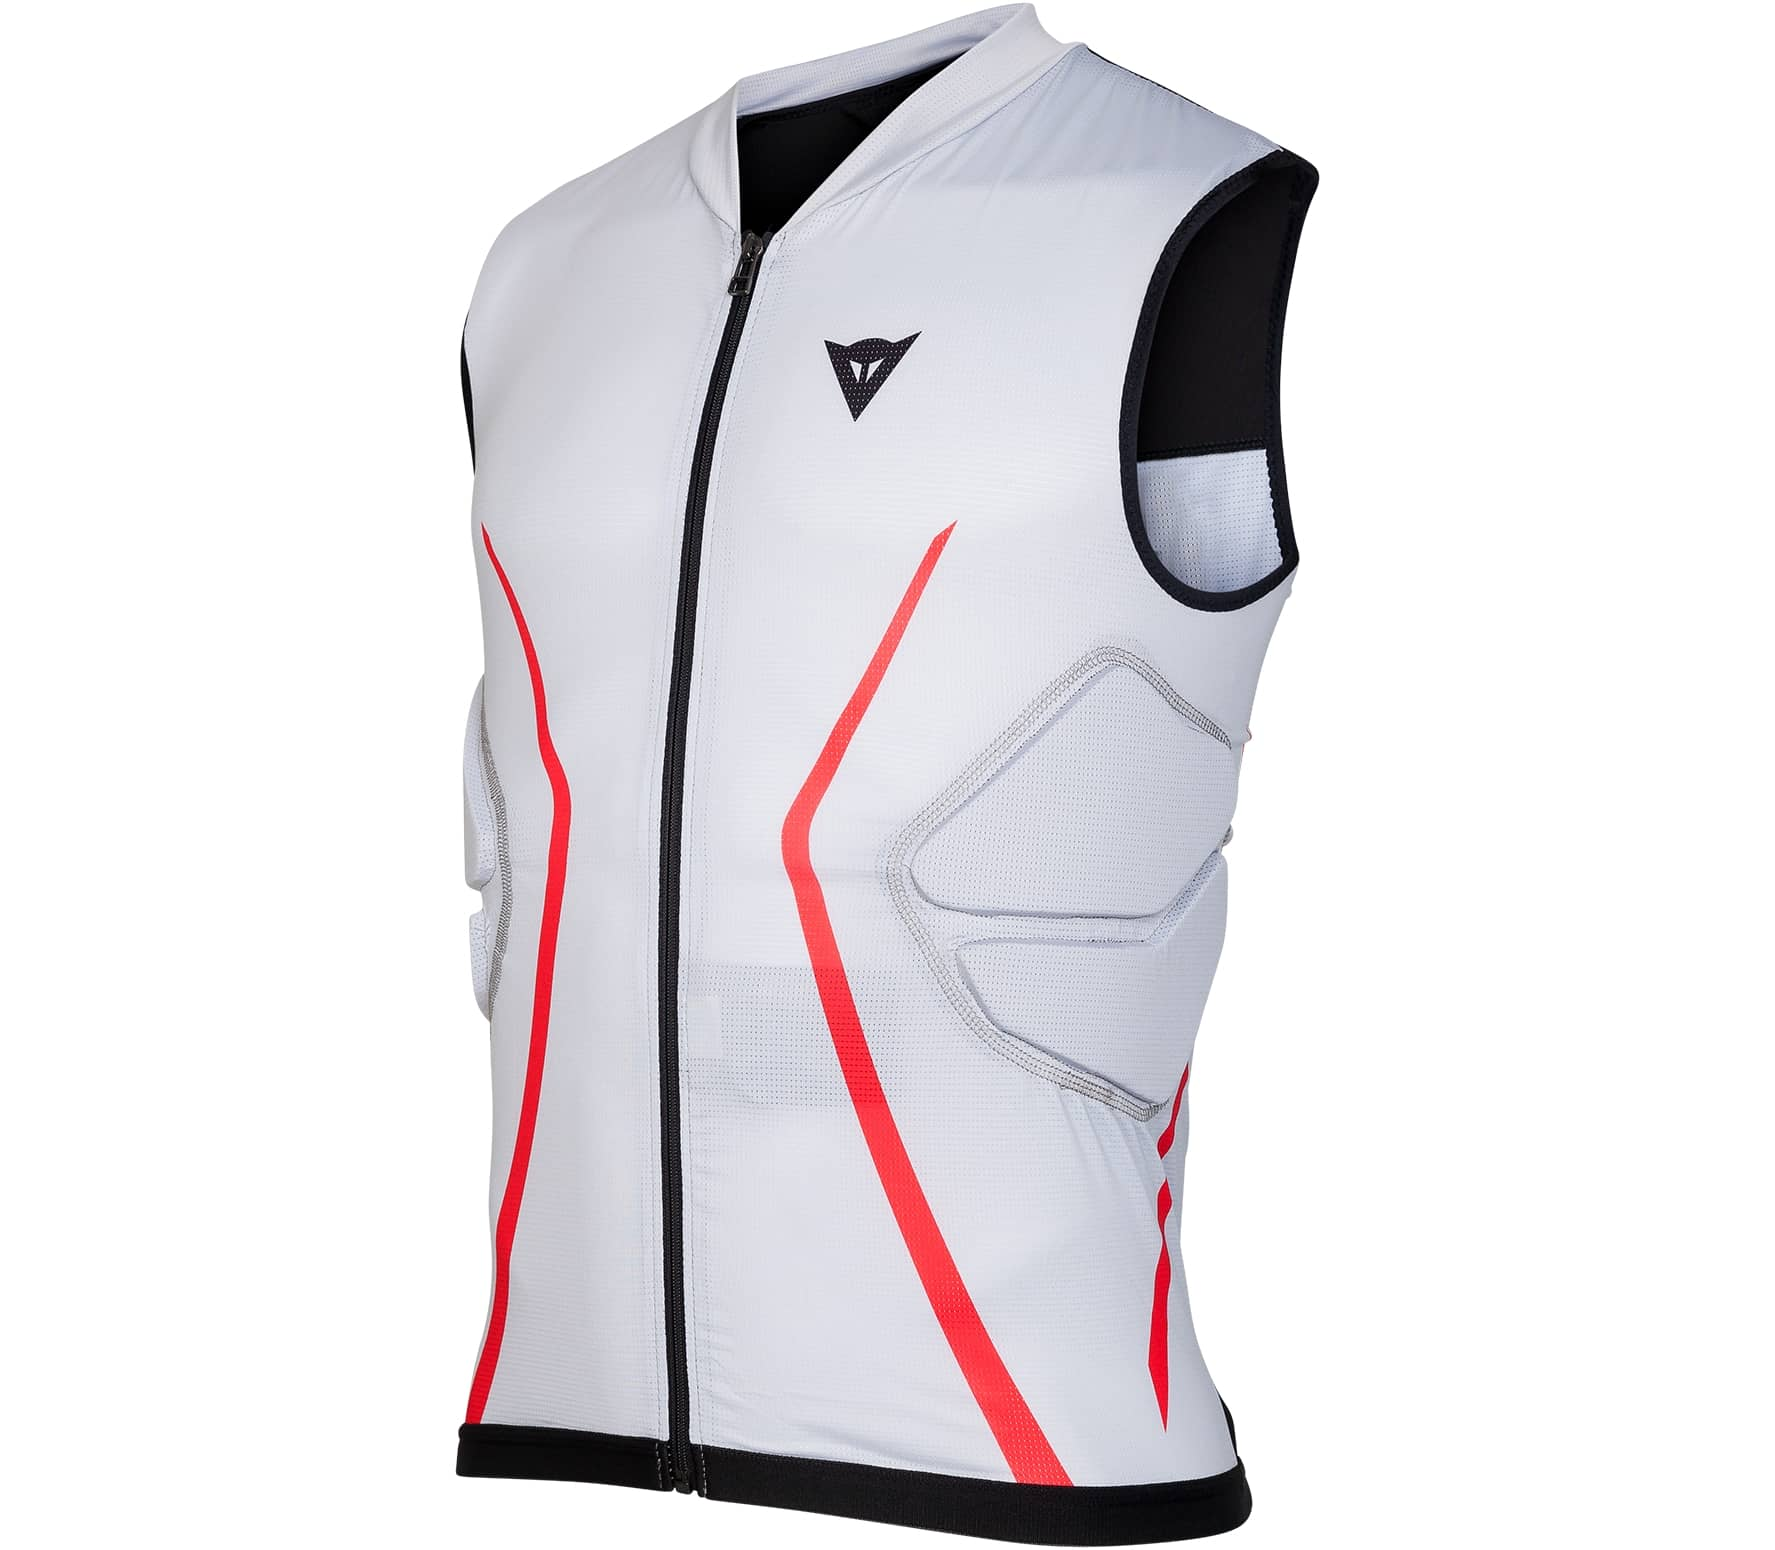 428972ca9 Dainese Flexagon Waistcoat Protector Men Gilet white - buy it at the ...